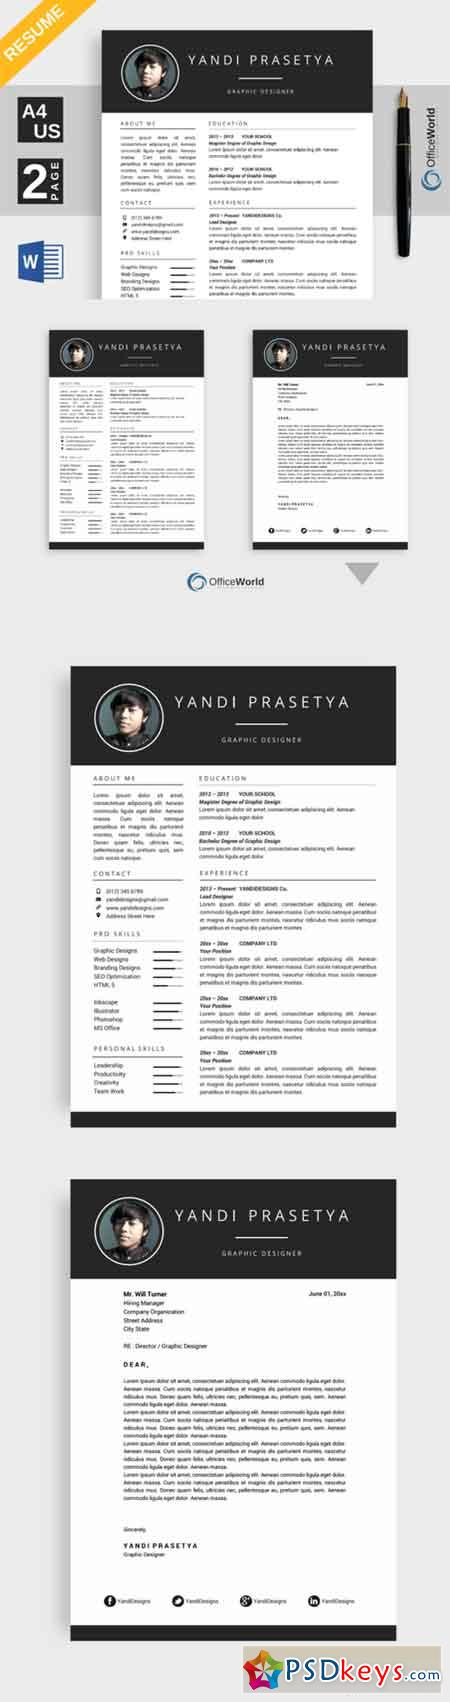 brilliance resume cv ms word 693856  u00bb free download photoshop vector stock image via torrent